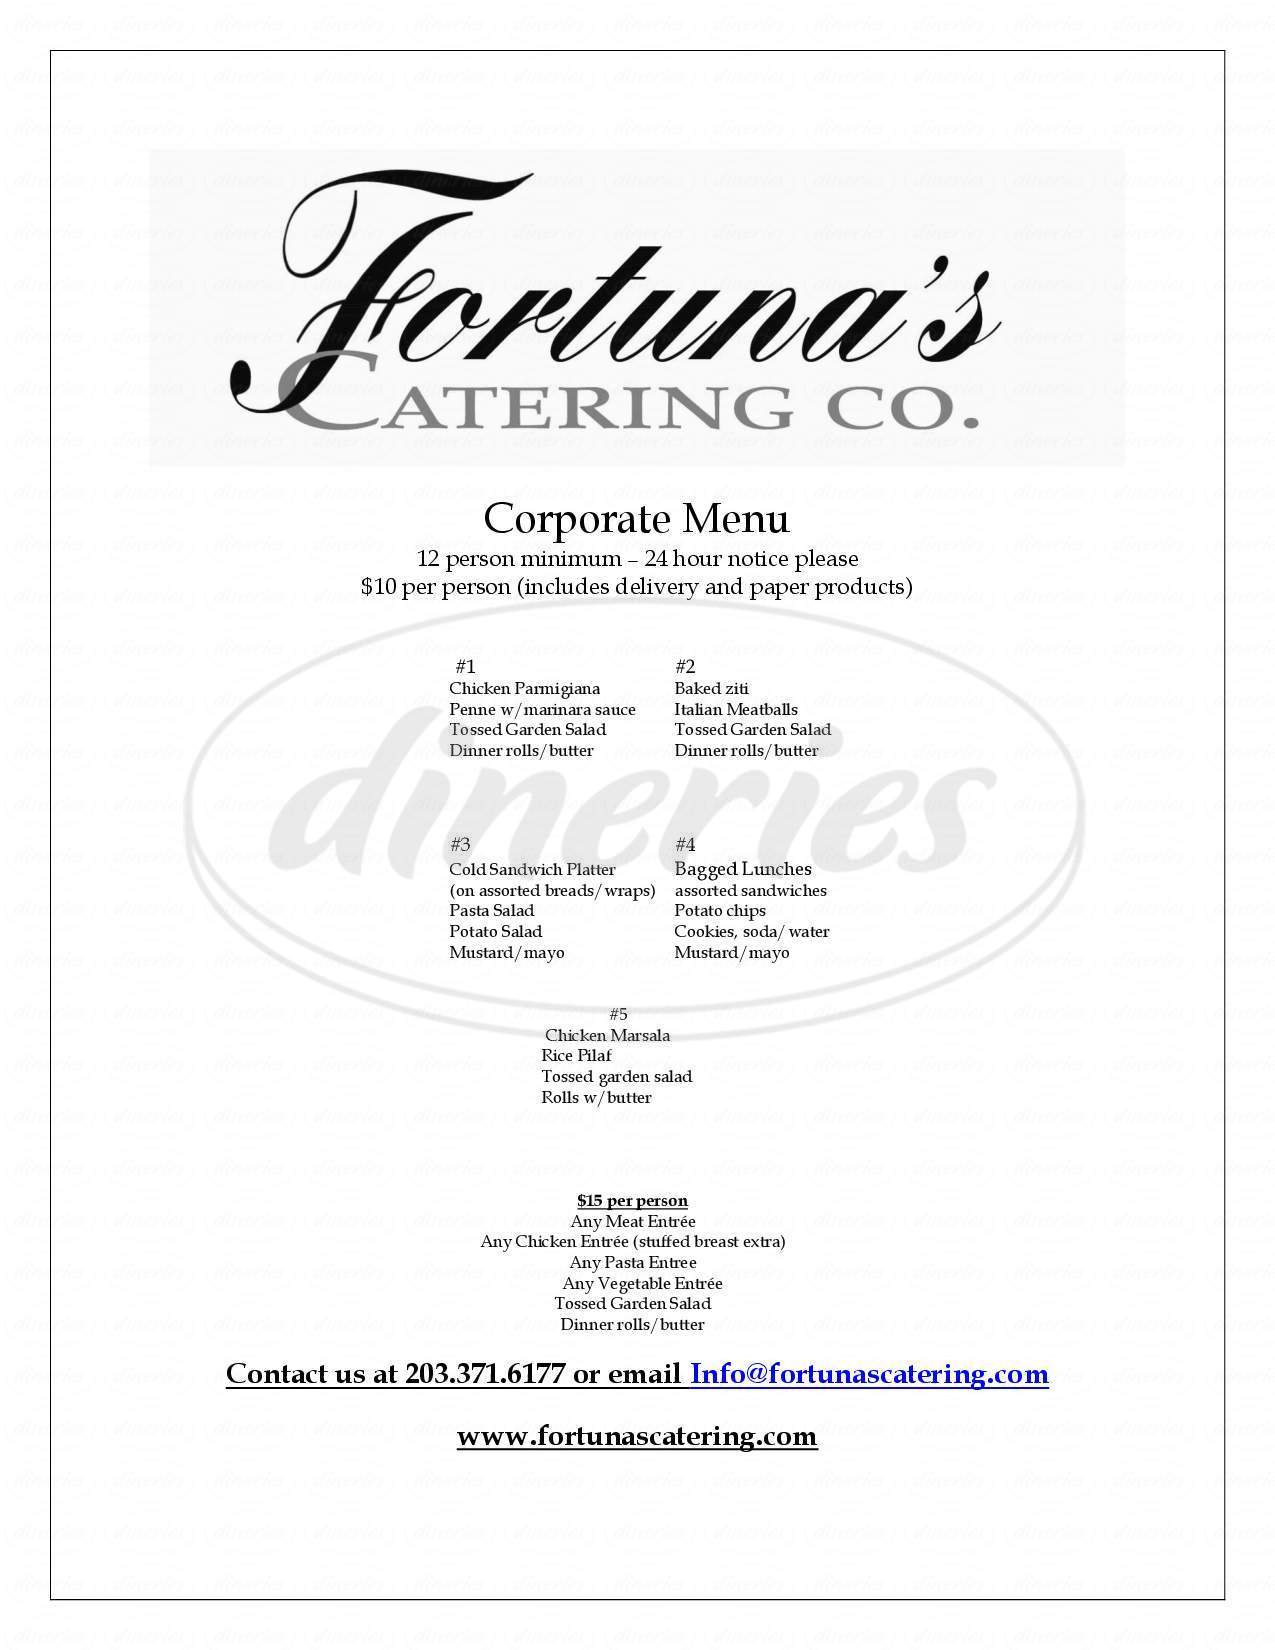 menu for Fortuna's Catering Co.